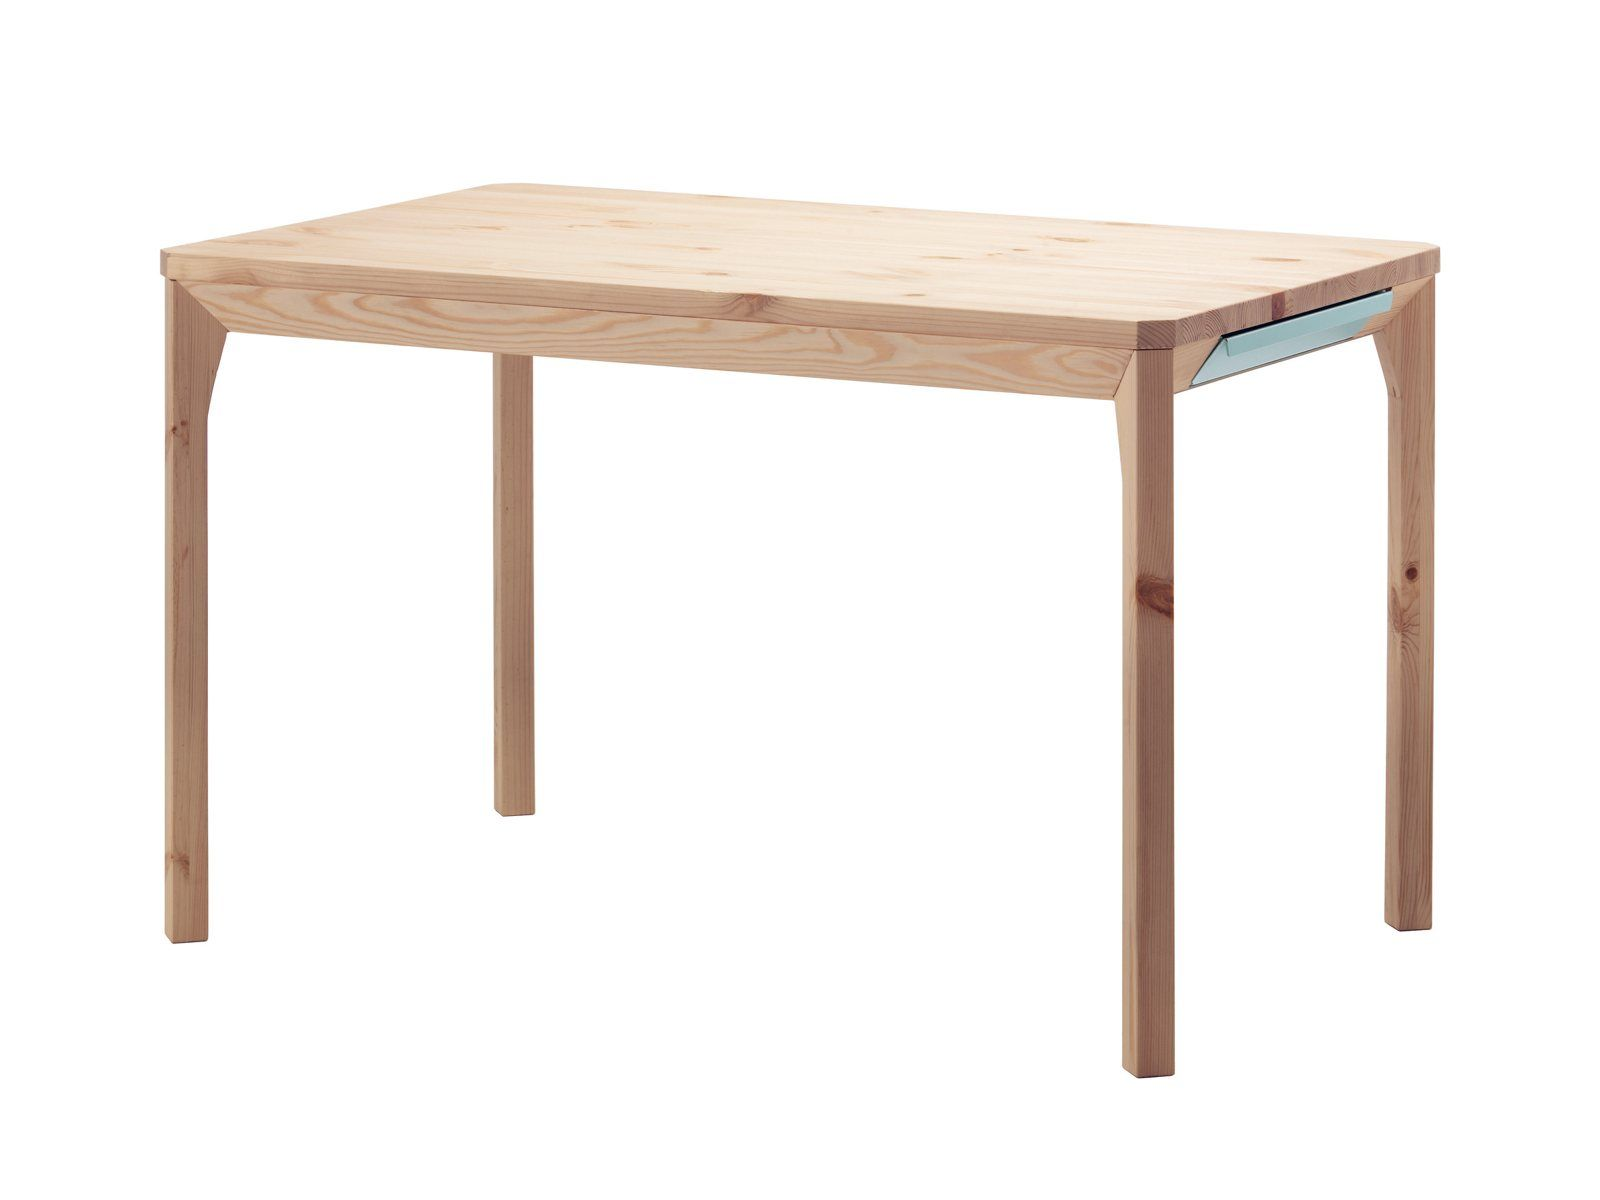 Ps 2014 Table By Mathias Hahn For Ikea Up Interiors Ikea Ps